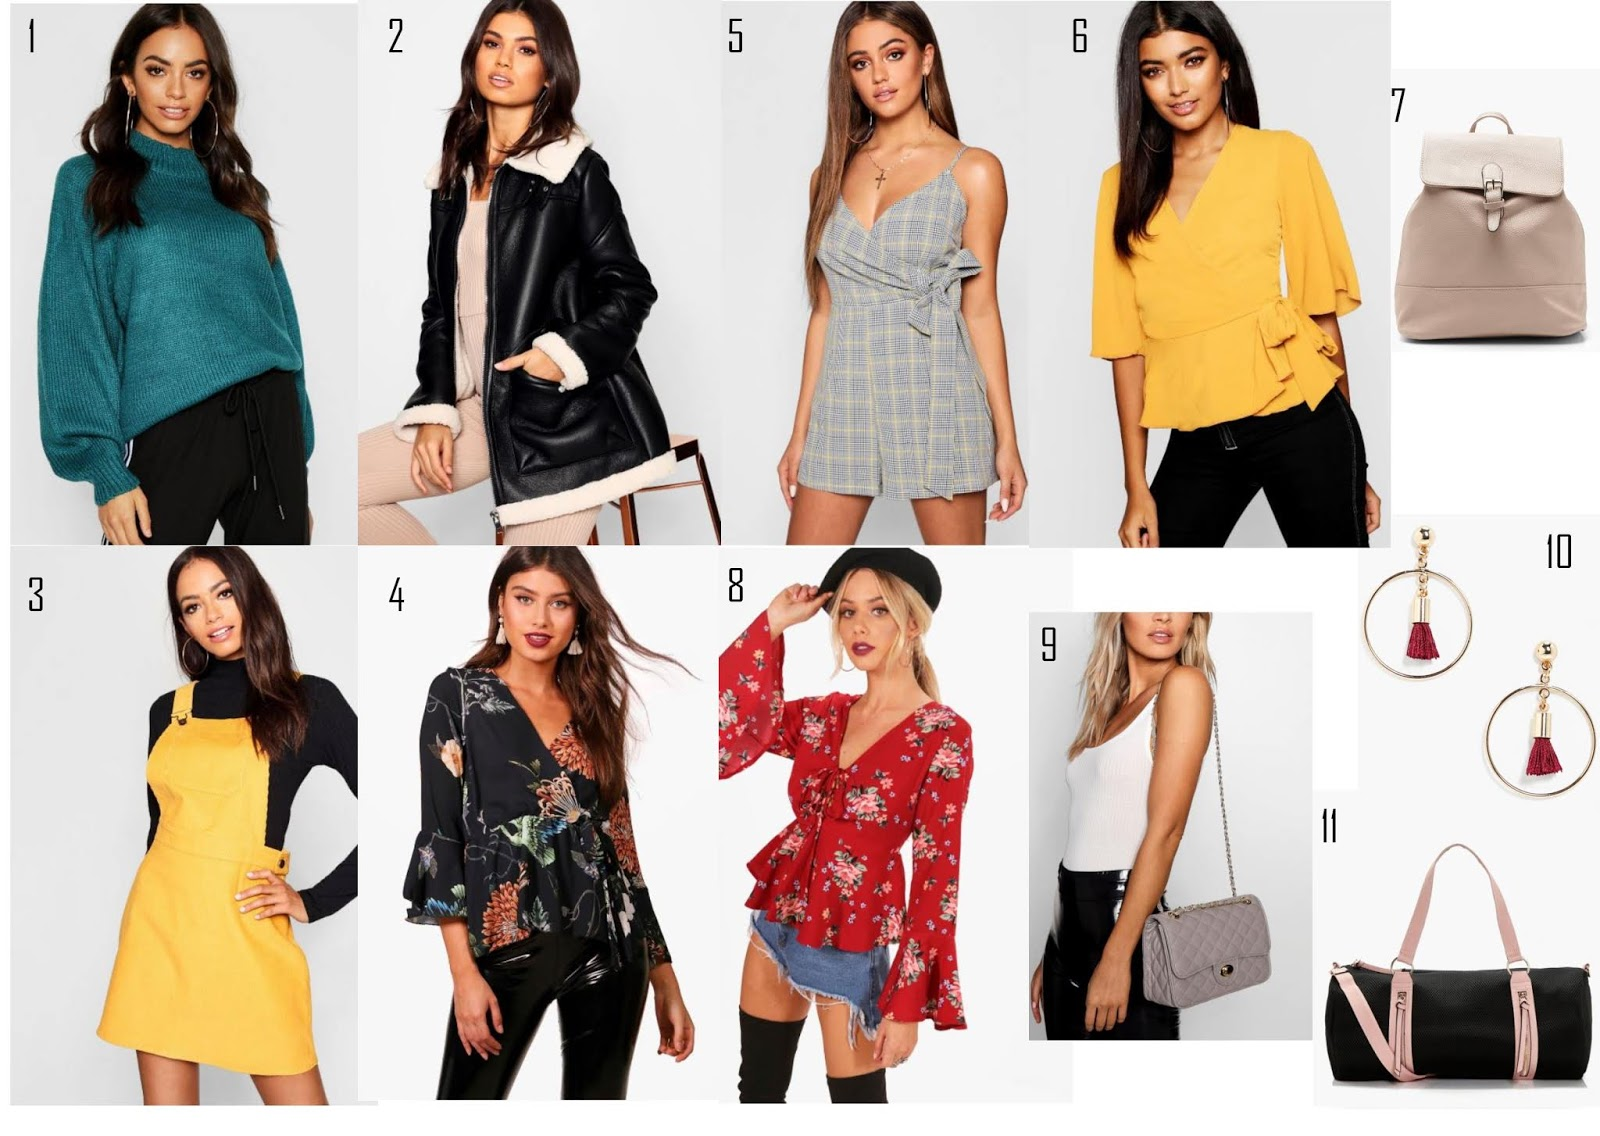 My Boohoo wishlist featuring coats, jumpers, dresses and accessories